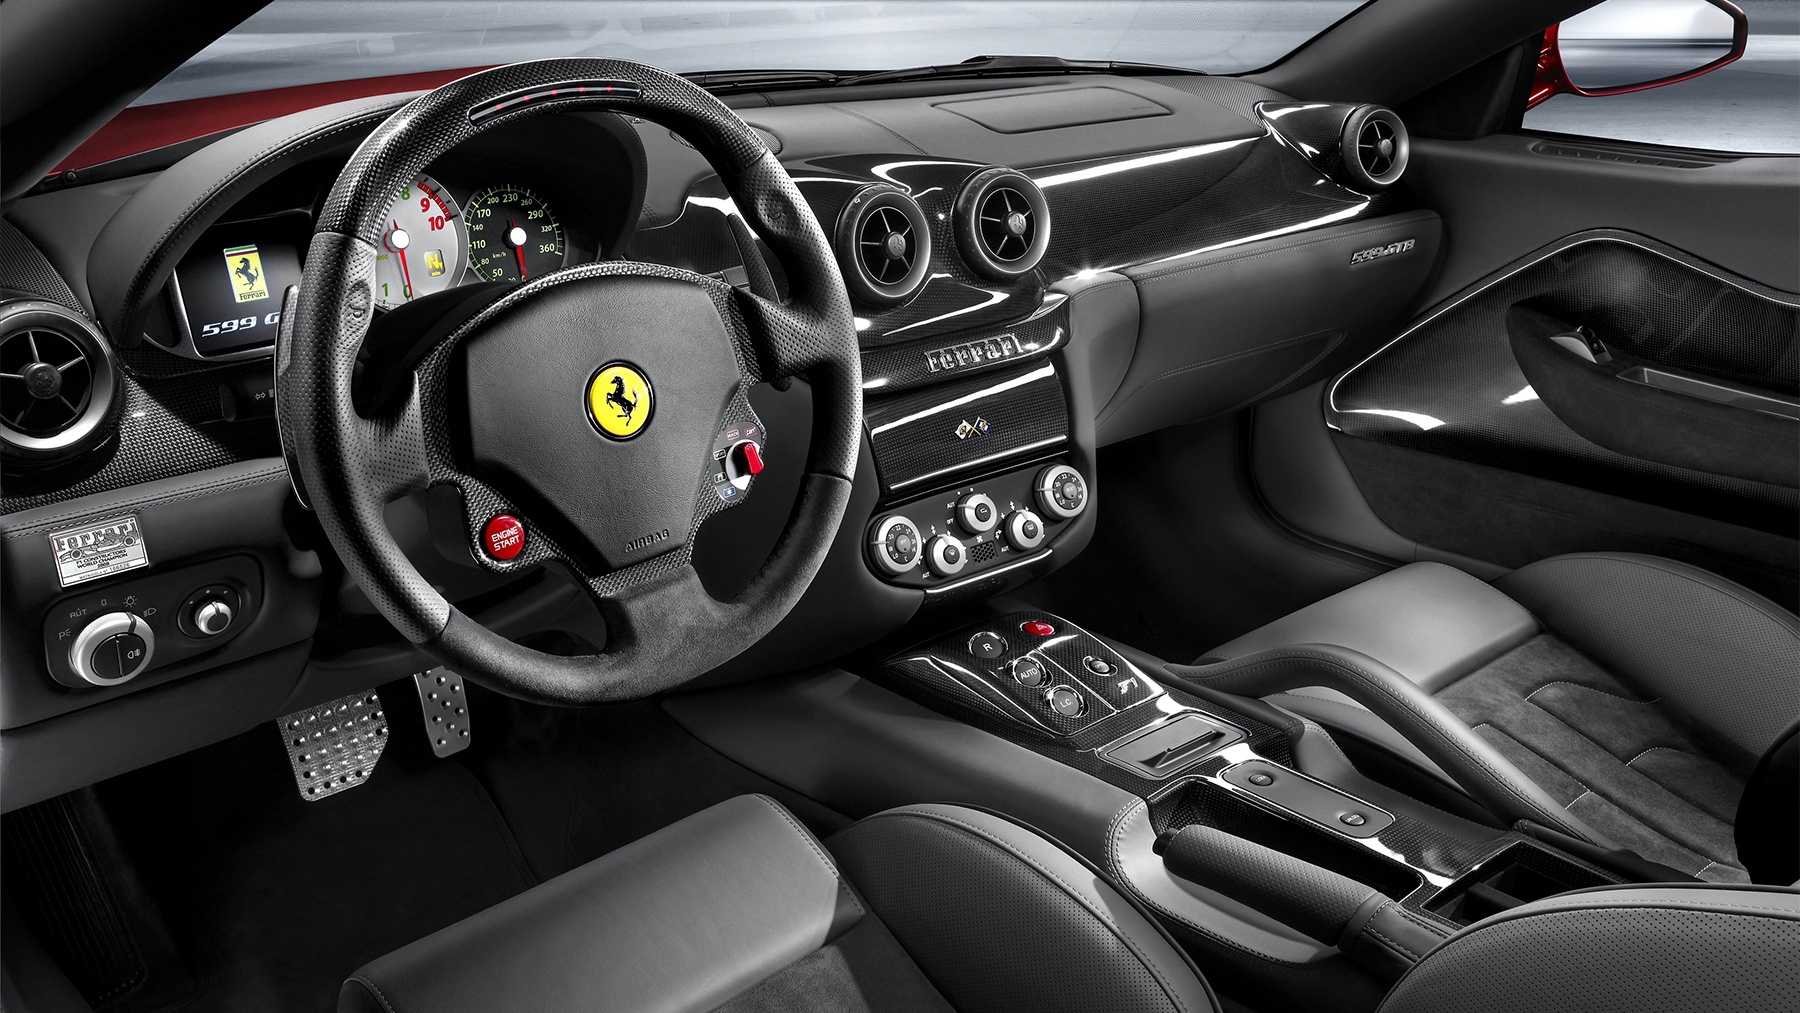 2009 ferrari 599 gtb hgte package 004